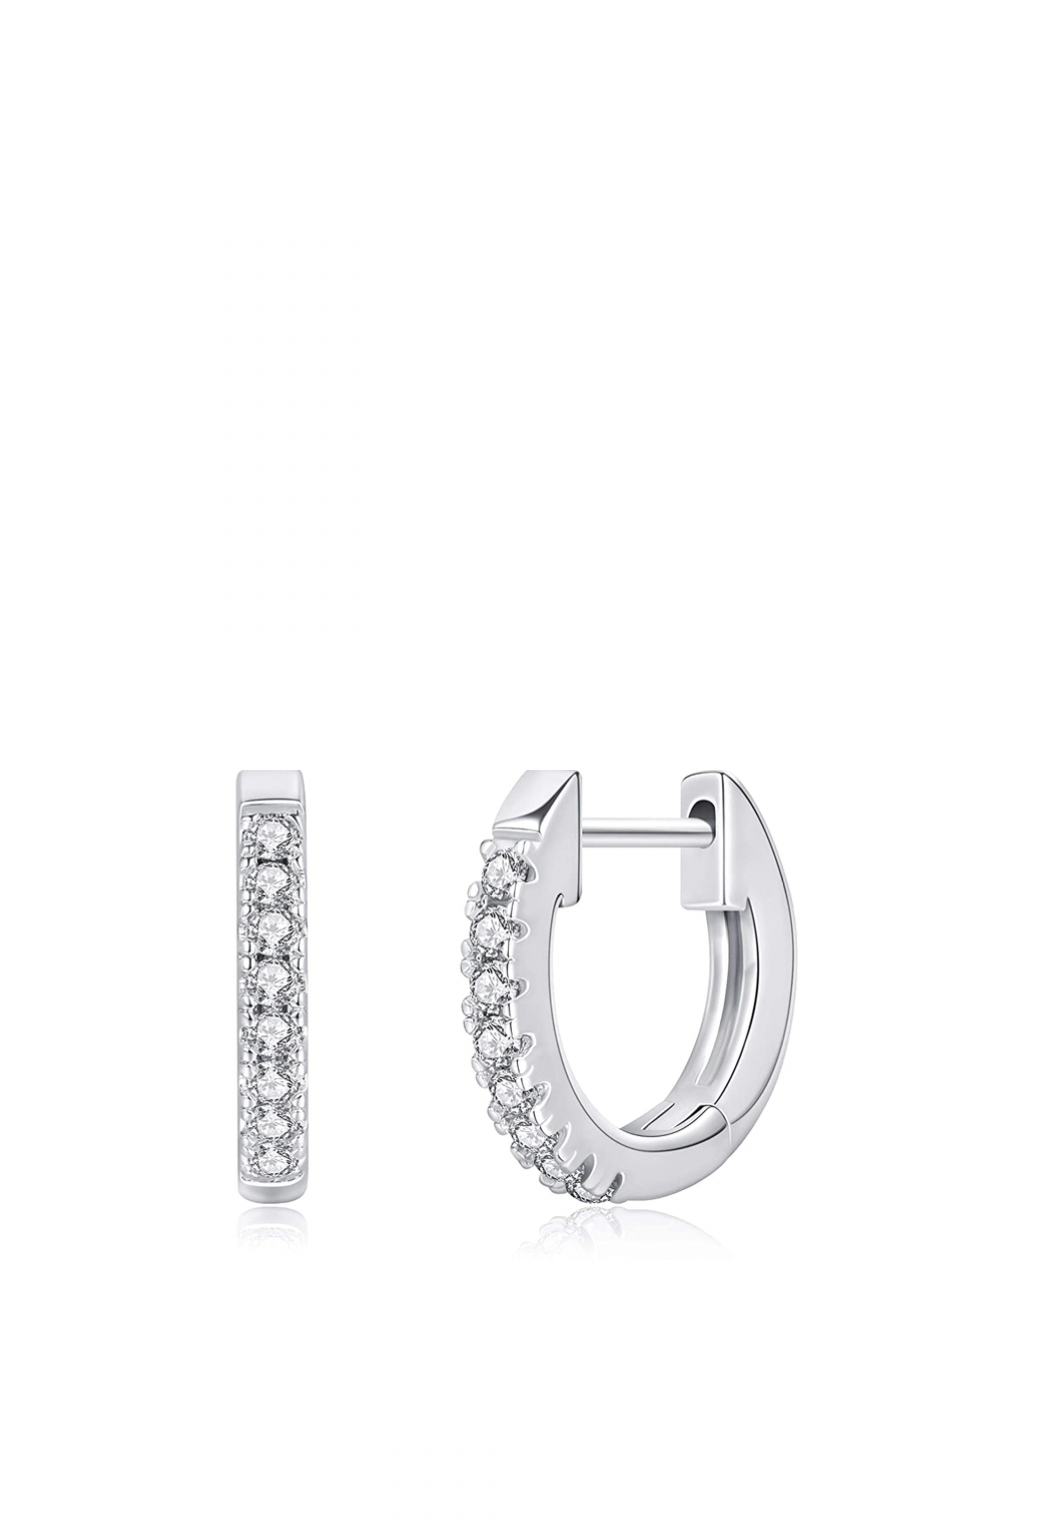 Silver Cz Huggie Earrings